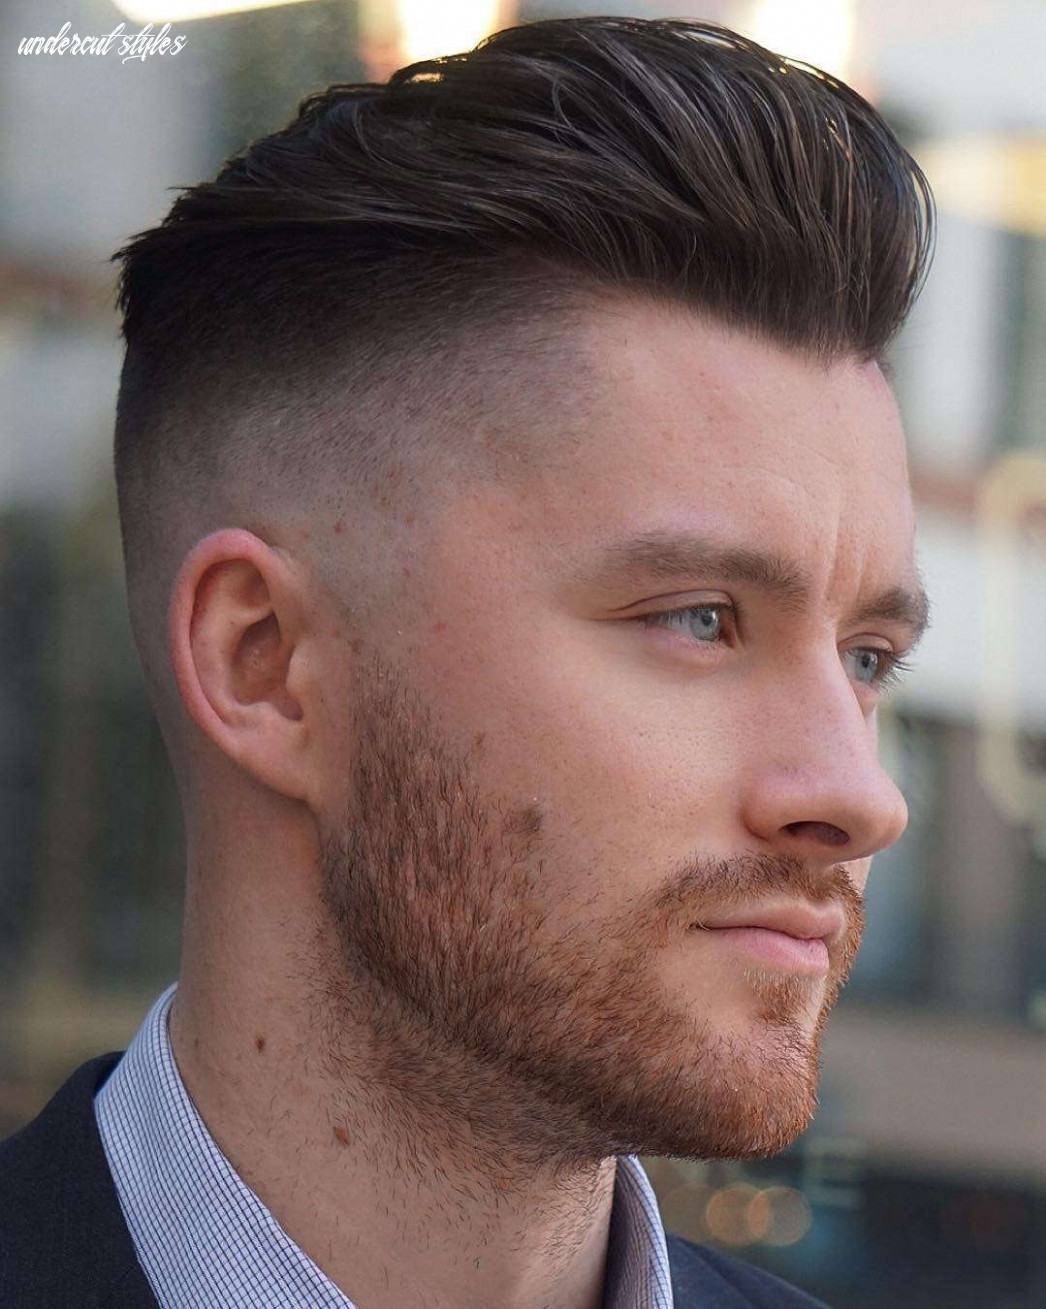 10 stylish undercut hairstyle variations to copy in 10: a